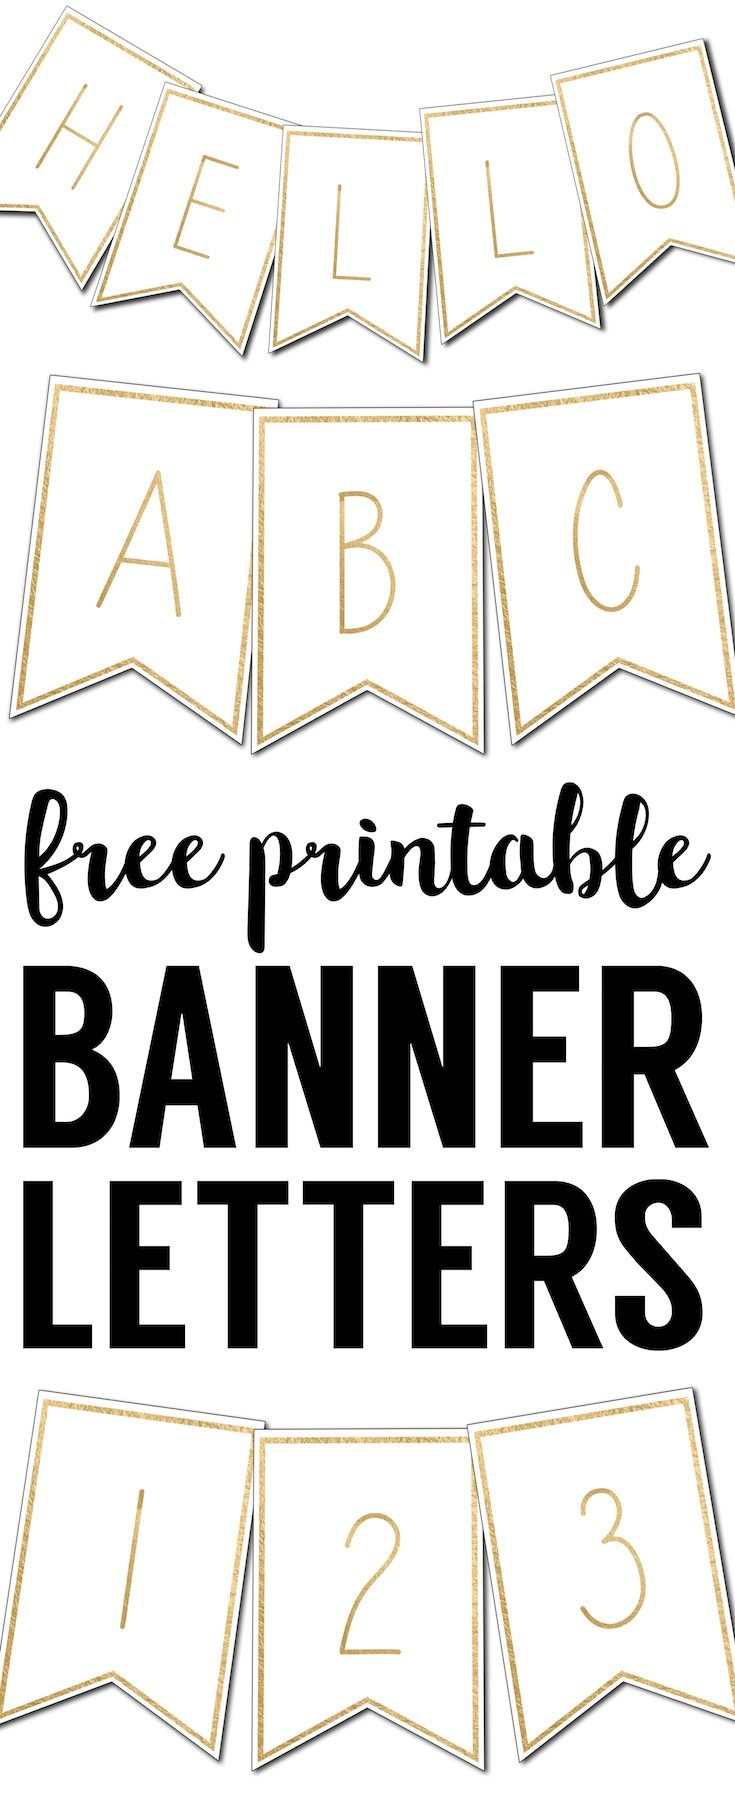 Free Printable Banner Letters Templates Free printable